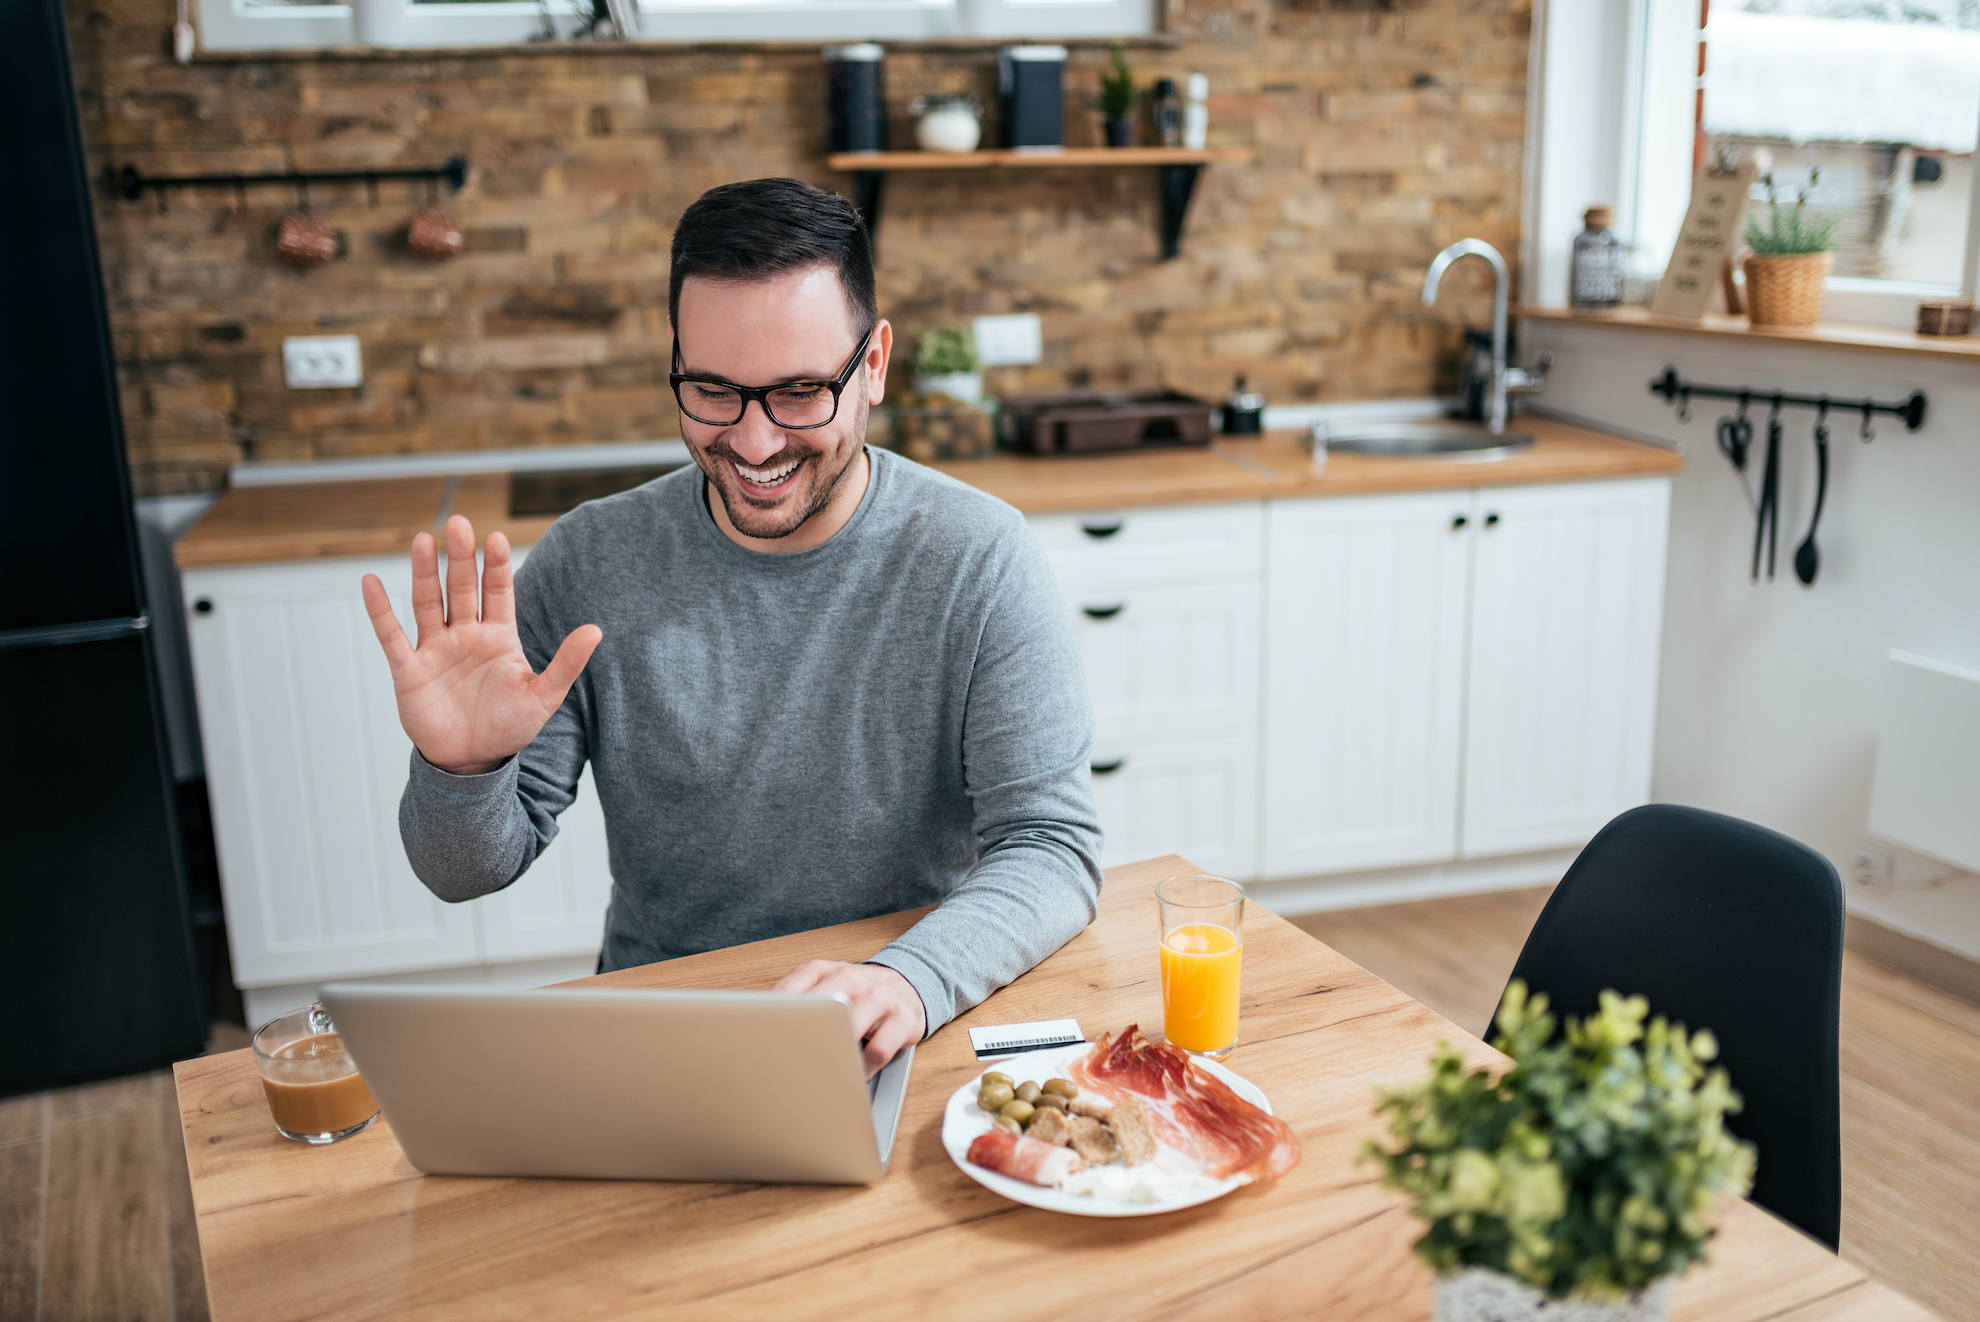 Smiling man enjoying breakfast in the kitchen and having a video call on laptop.